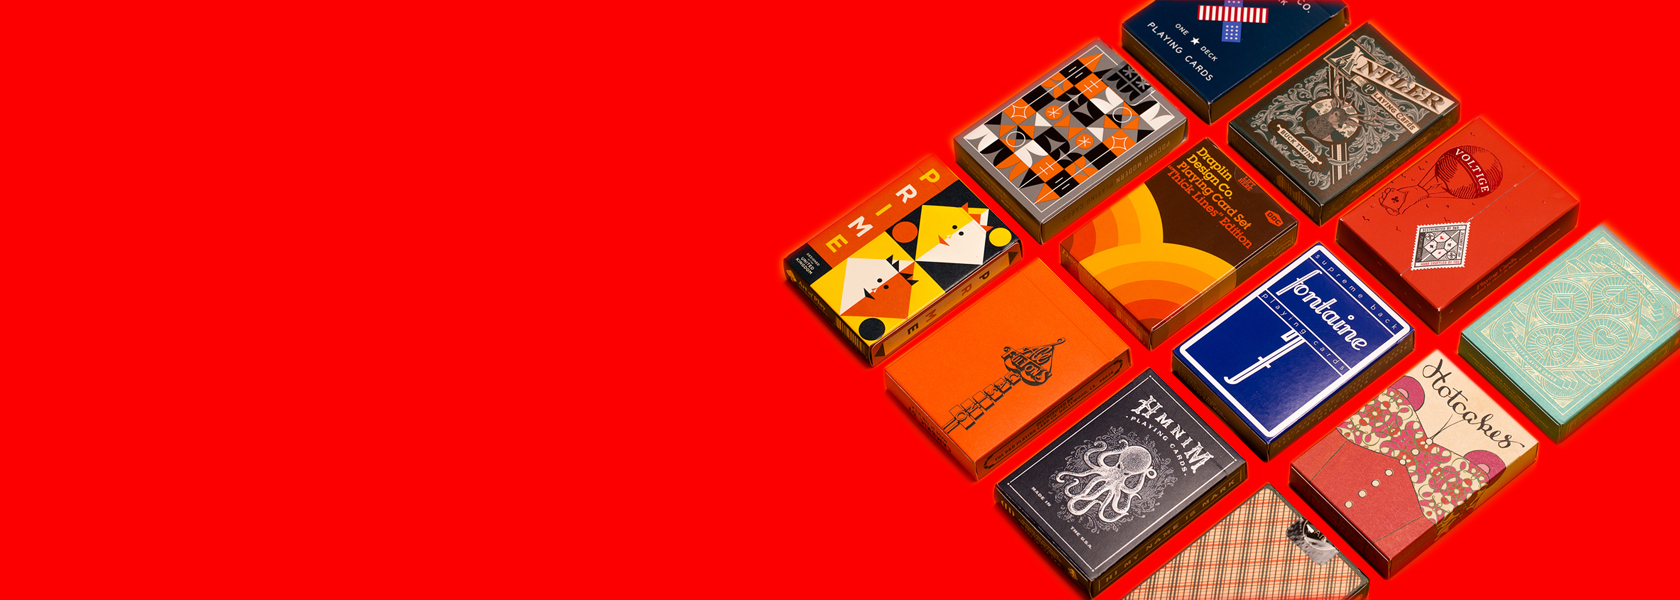 Spy Cheating Playing Cards